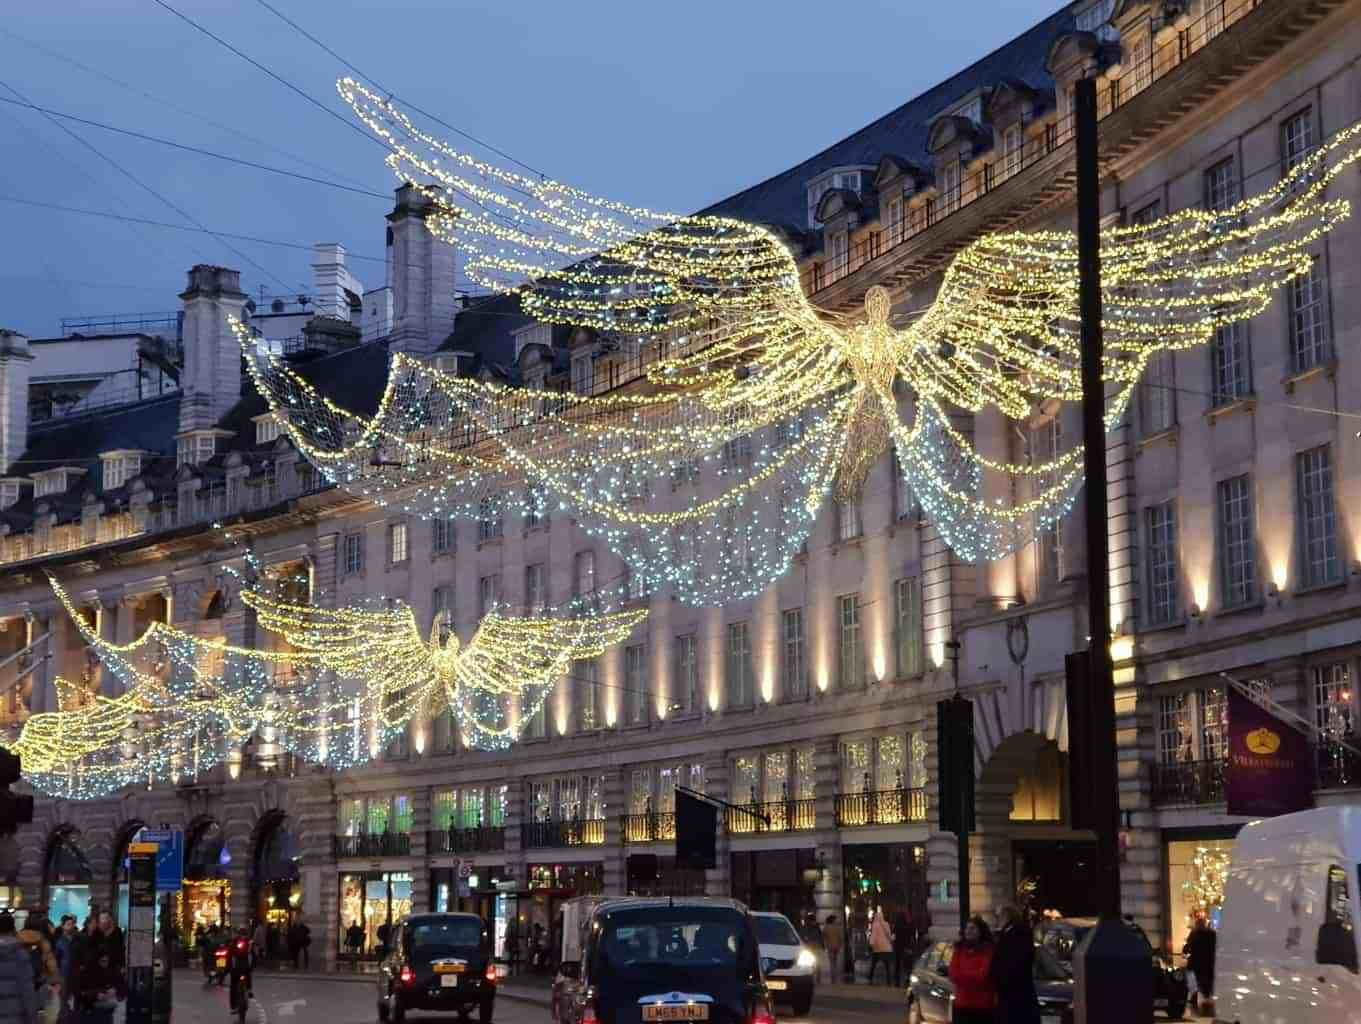 A festive day out in London. Where to find the best Christmas Markets, Christmas Trees, Christmas Lights and festive fun #london #christmas #coventgarden #regentstreet #carnabystreet